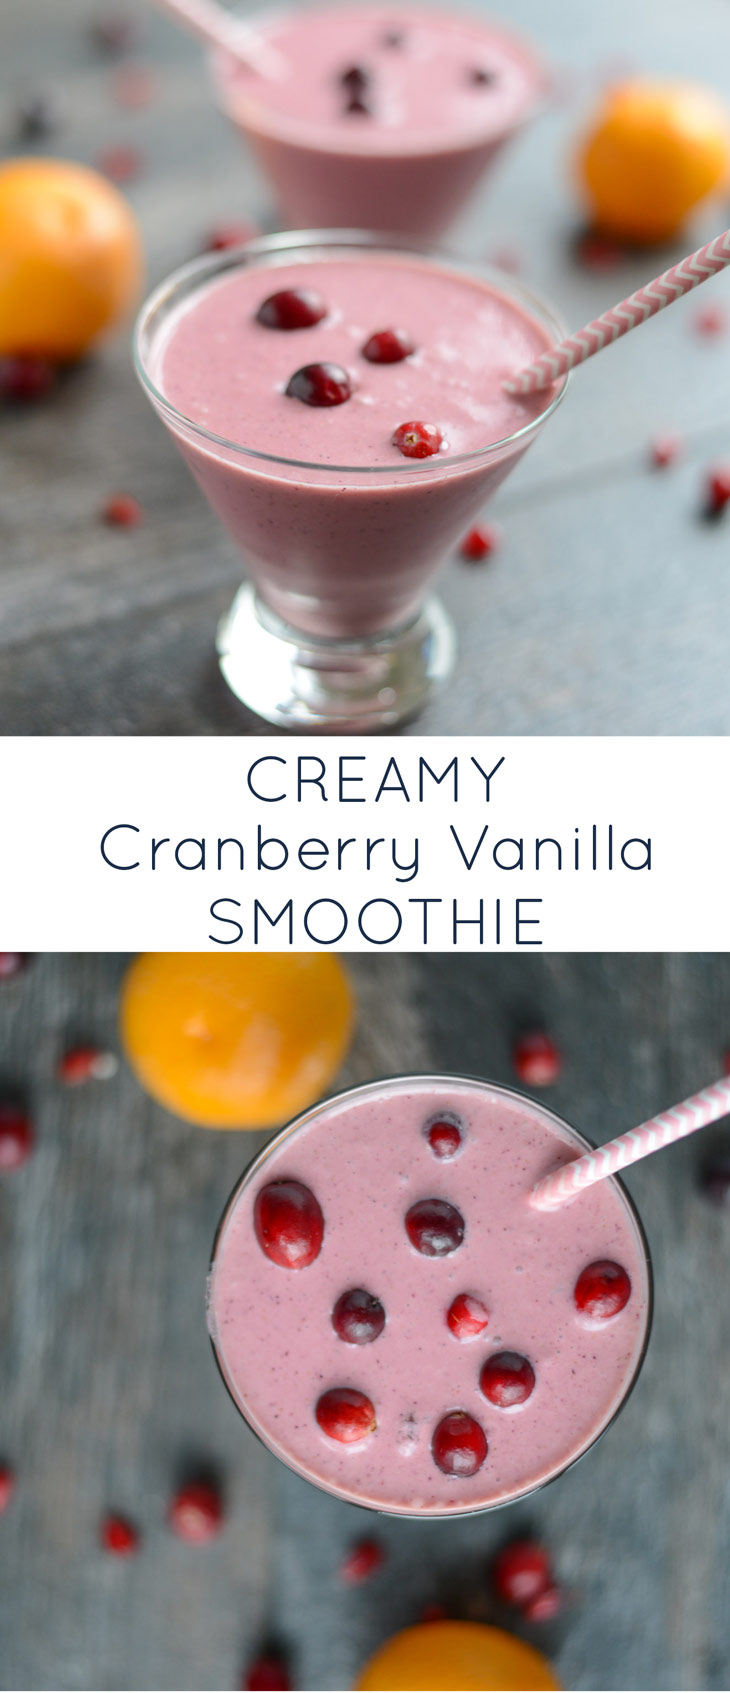 This powerhouse Creamy Cranberry Vanilla Smoothie is packed with good-for-you ingredients and tastes like a decedent treat. The perfect smoothie to kick off your morning or to sip on as an afternoon snack! Naturally gluten-free, dairy-free, and refined sugar-free.